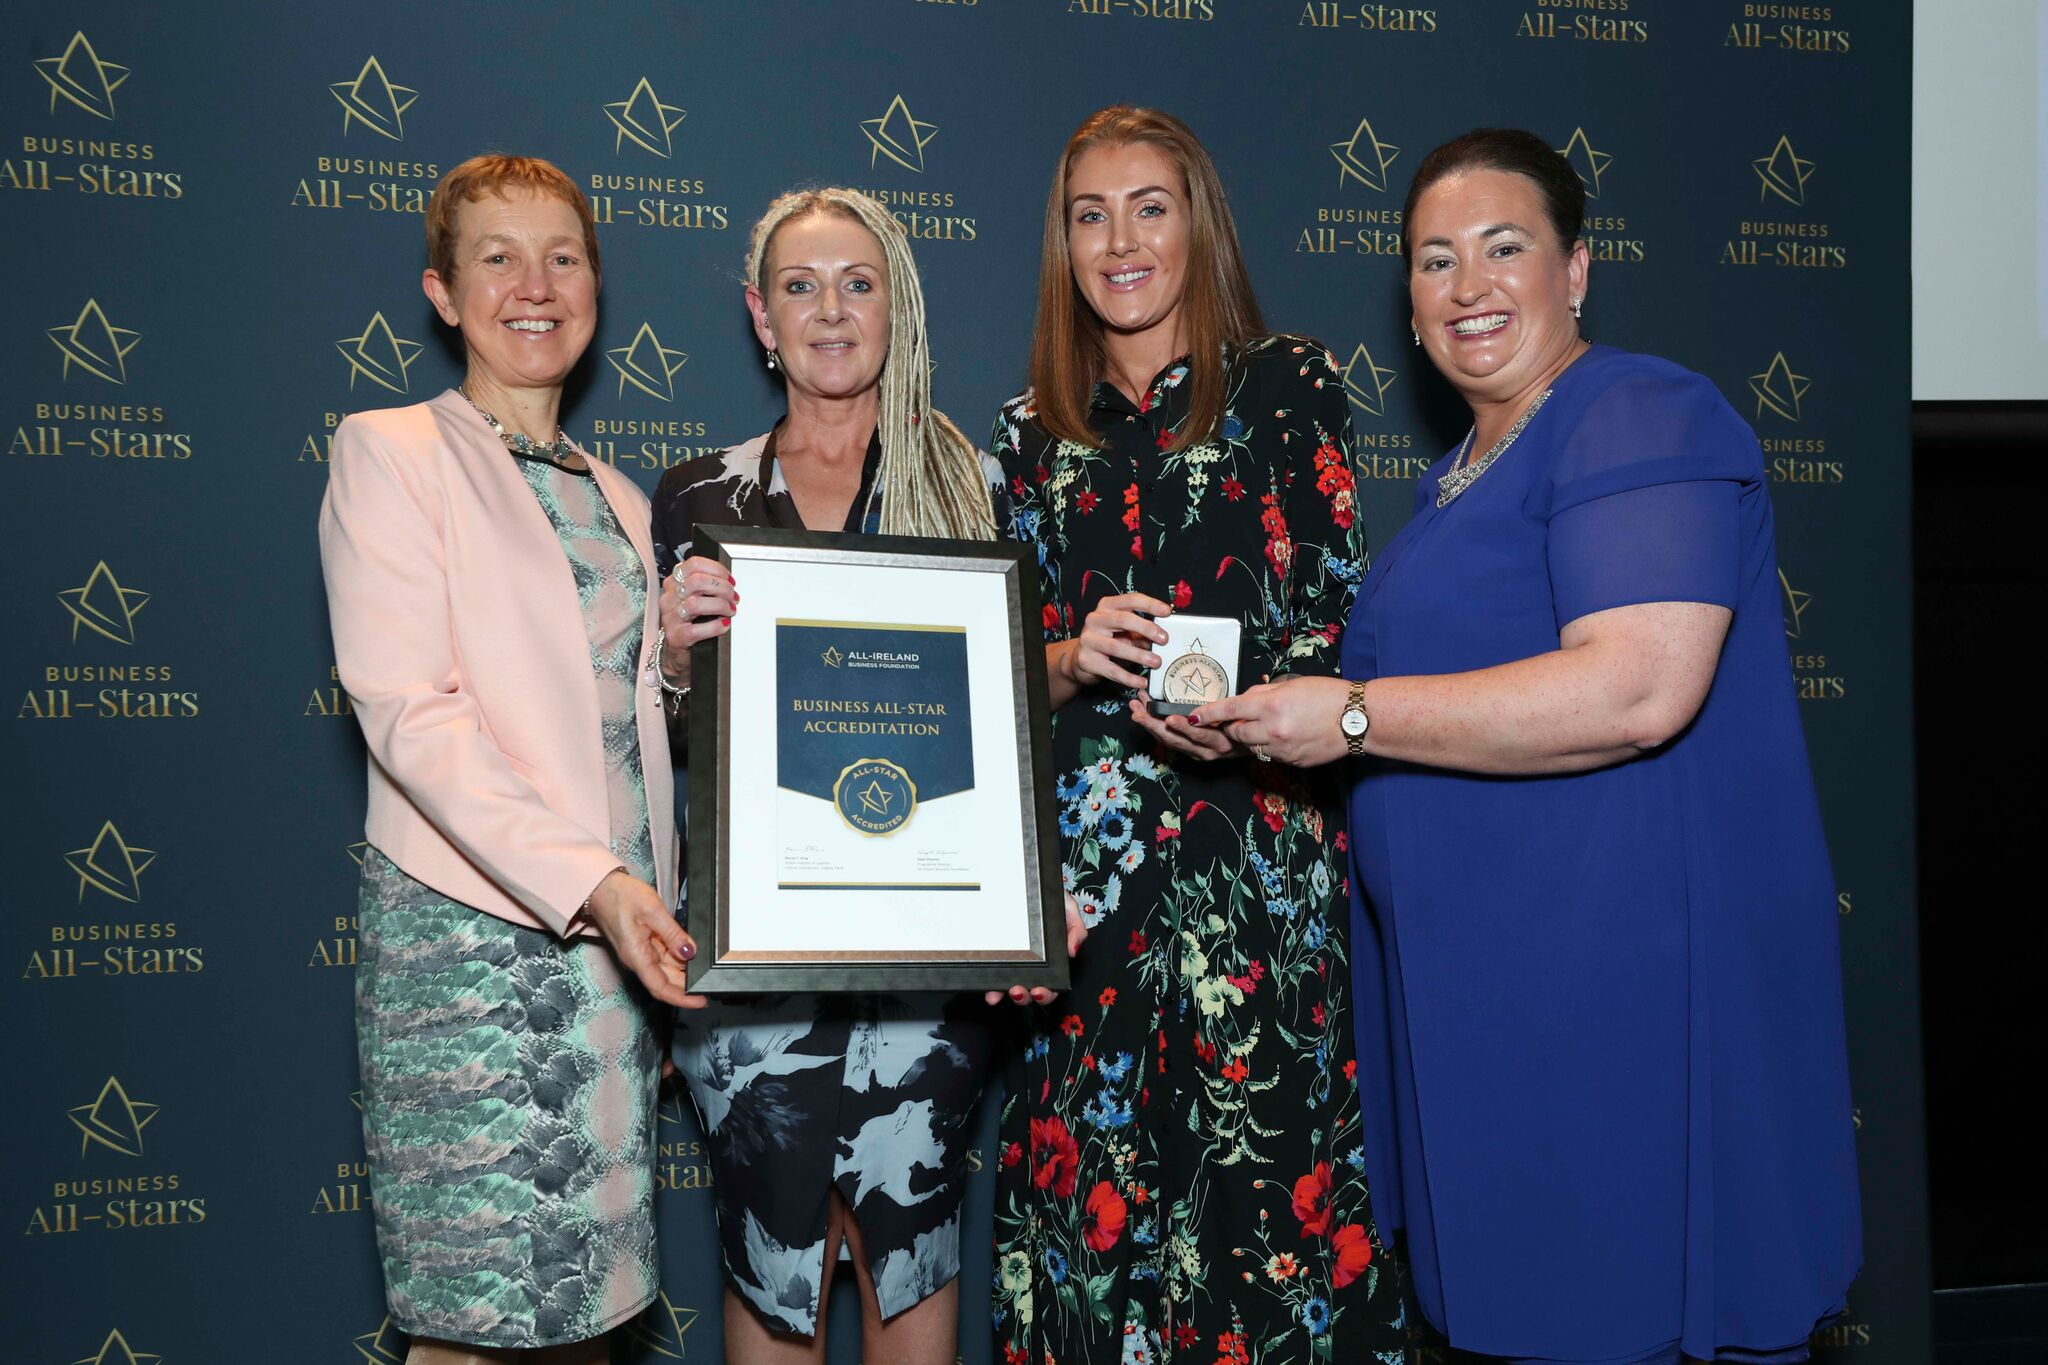 Loretta McDonald - Central Precast receiving Business All-Star Accreditation at Croke Park from Dr Briga Hynes, Kemmy Business School, University of Limerick and Elaine Carroll CEO, All-Ireland Business Foundation.